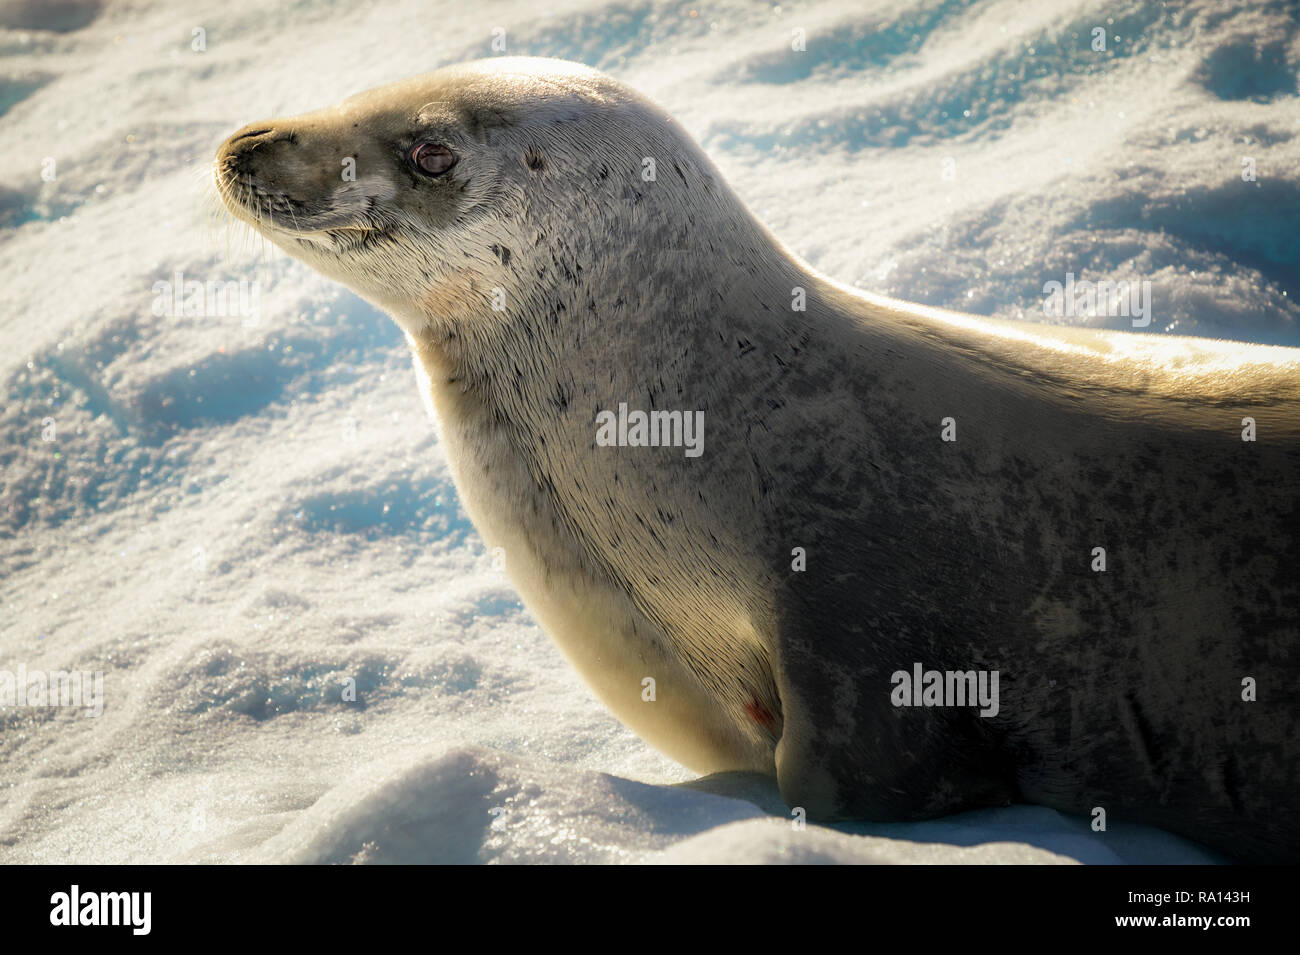 Crabeater seal at Lemaire Channel, Antarctica - Stock Image